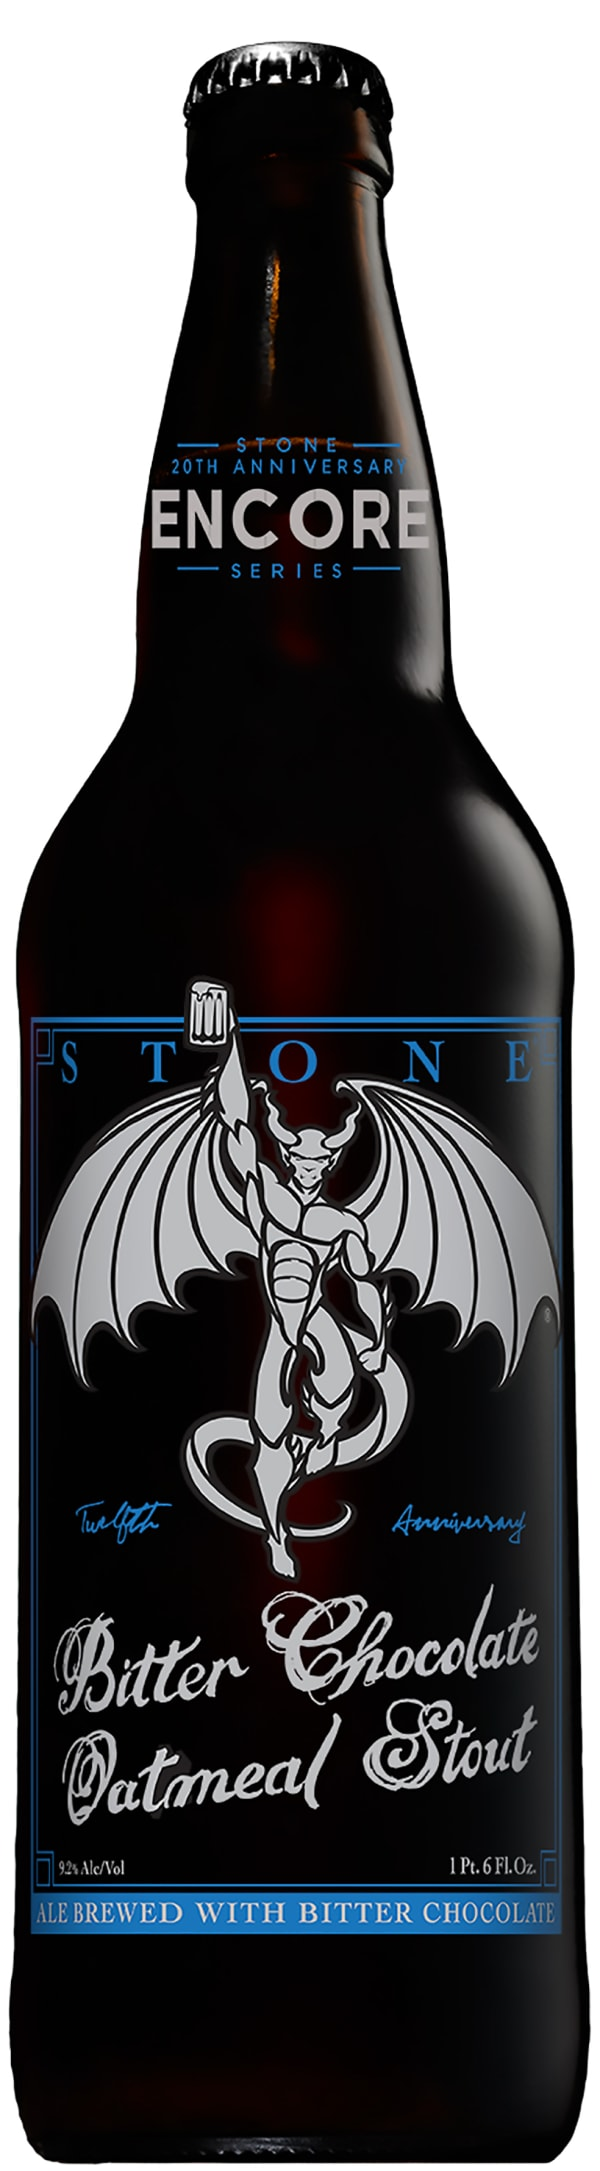 Stone Bitter Chocolate Oatmeal Stout